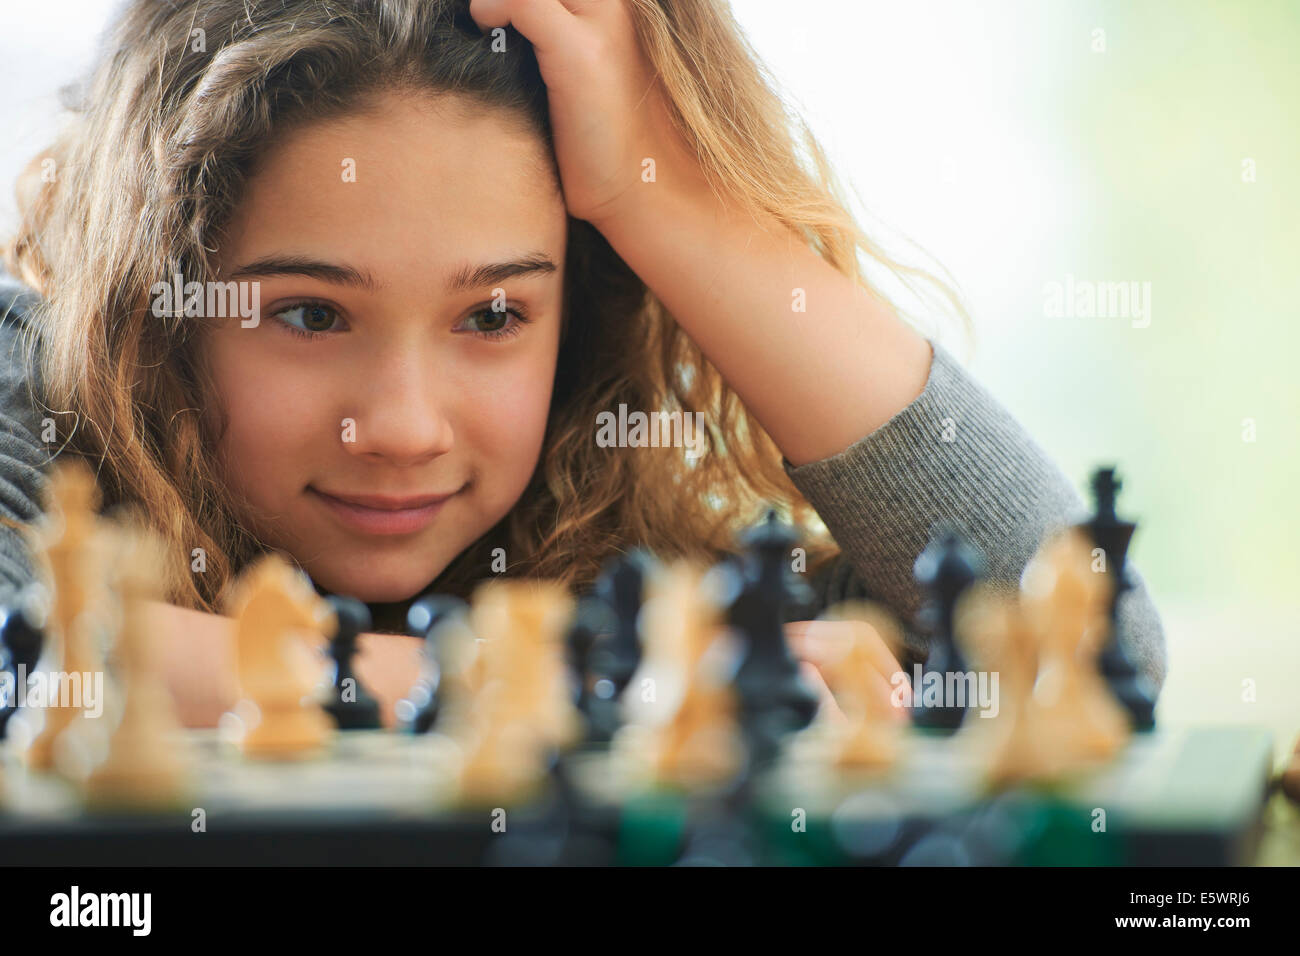 Portrait of young girl playing chess - Stock Image